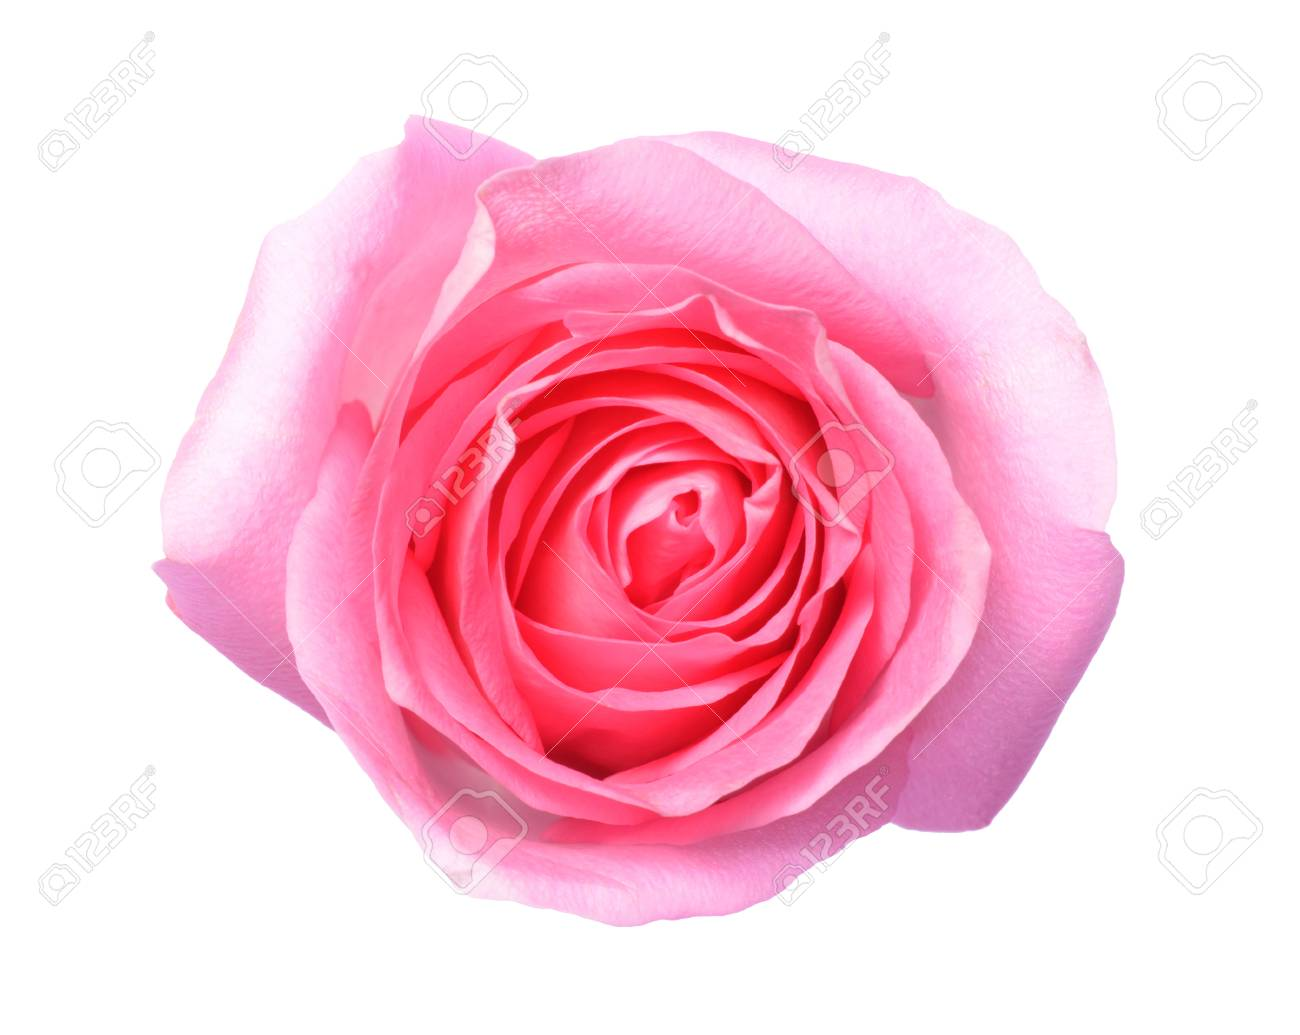 Pink Rose A Top View Photo Of Single Pink Rose Flower Isolate